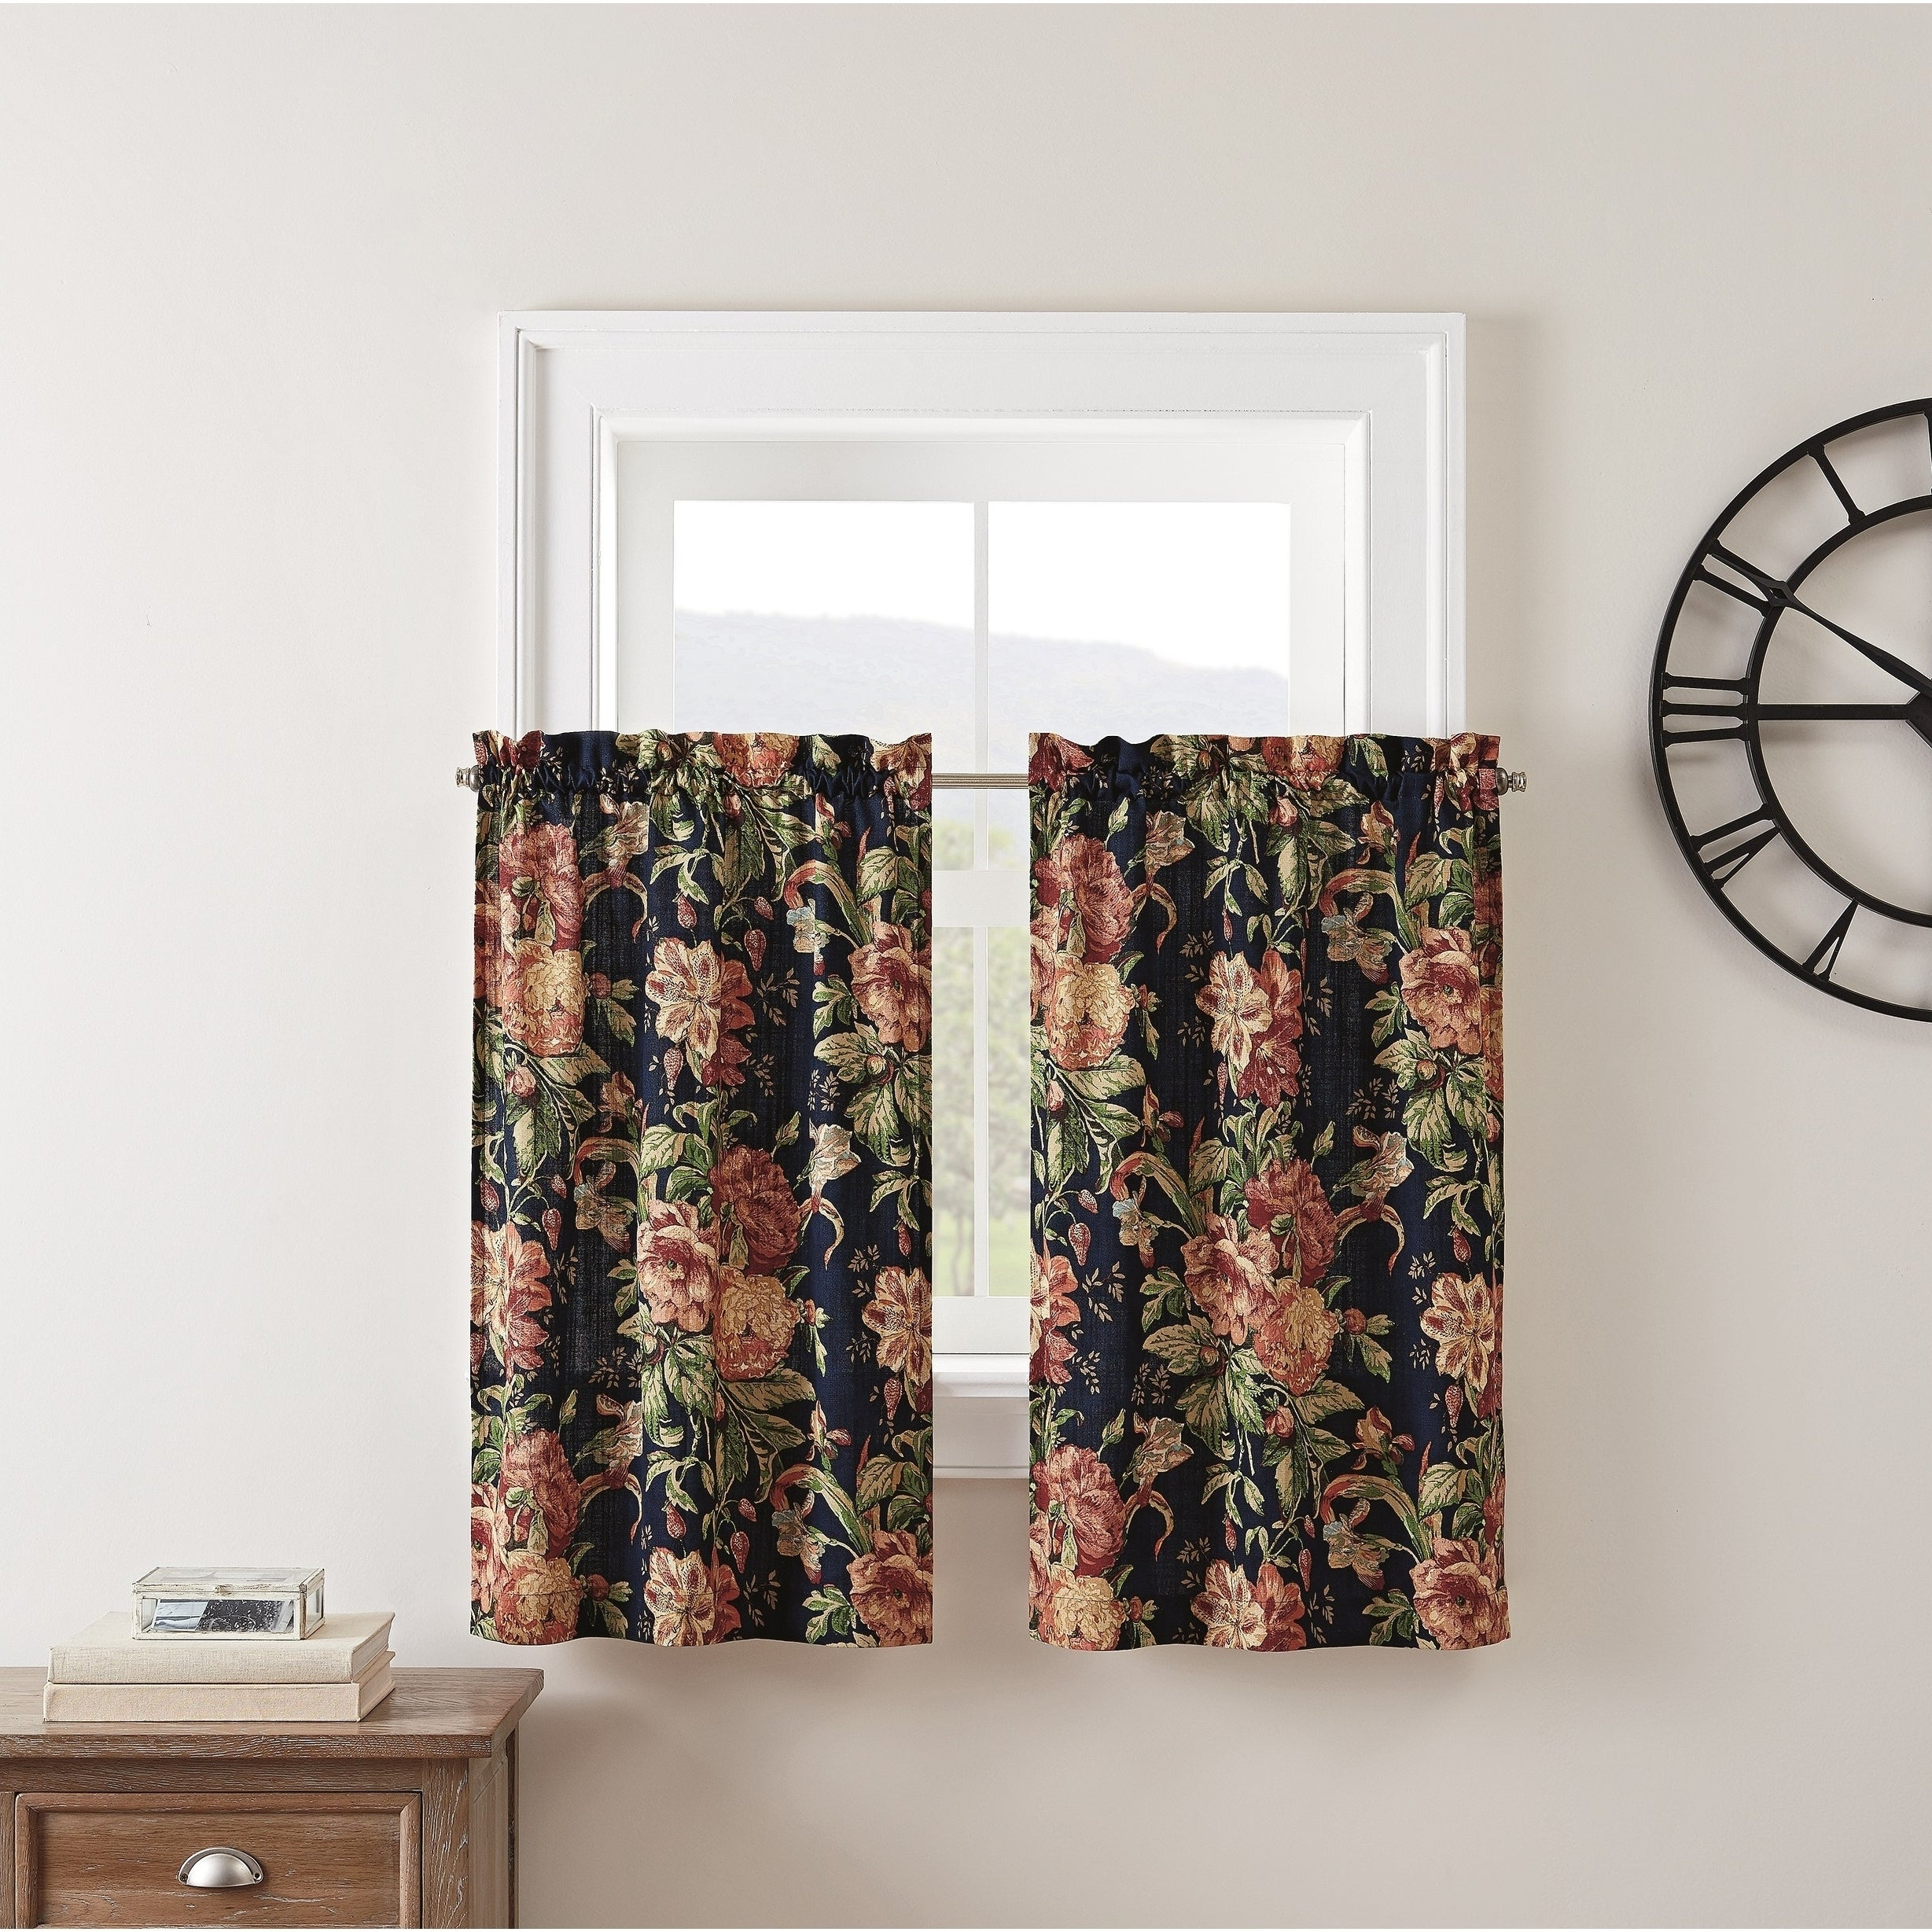 Widely Used Oakwood Linen Style Decorative Window Curtain Tier Sets In Waverly Kensington Bloom Window Tier Pair (View 19 of 20)